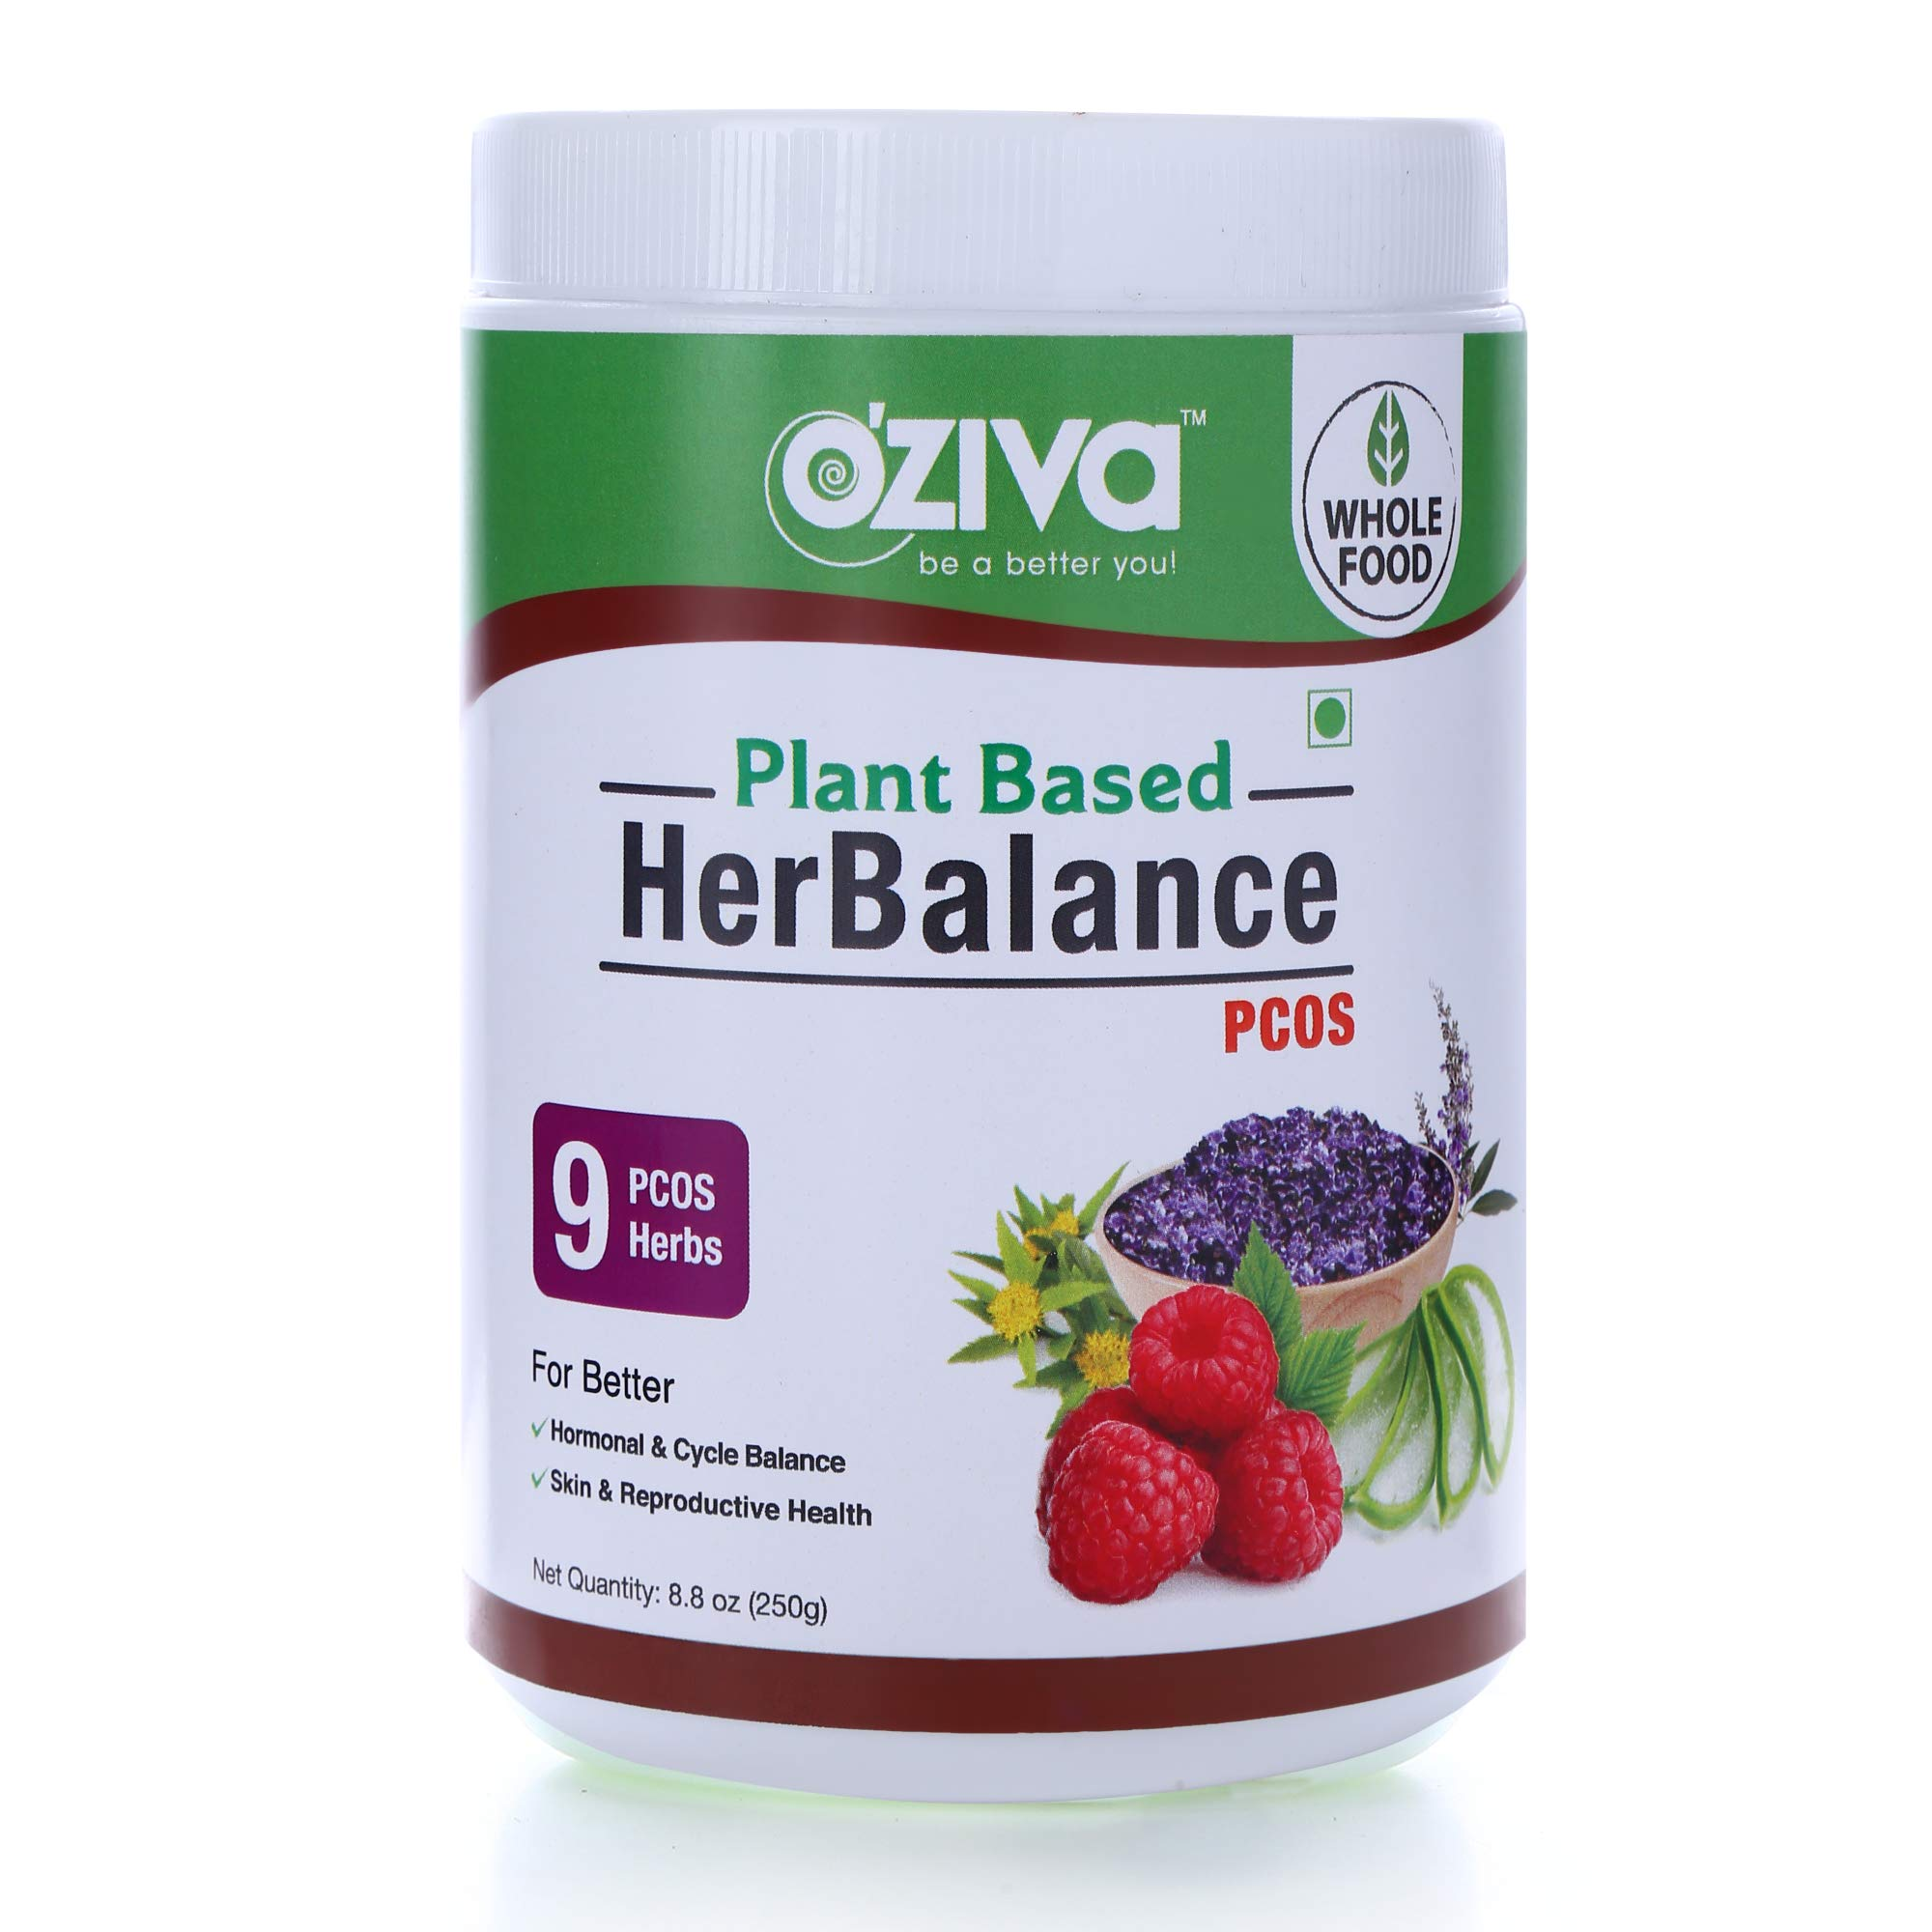 OZiva Plant Based HerBalance PCOS with Chasteberry (Vitex), Rhodiola Rosea, Red Raspberry, Shilajit, Ashoka & More for Better Hormone & Cycle Balance, Facial Hair, Reproductive Health 0.55 lbs